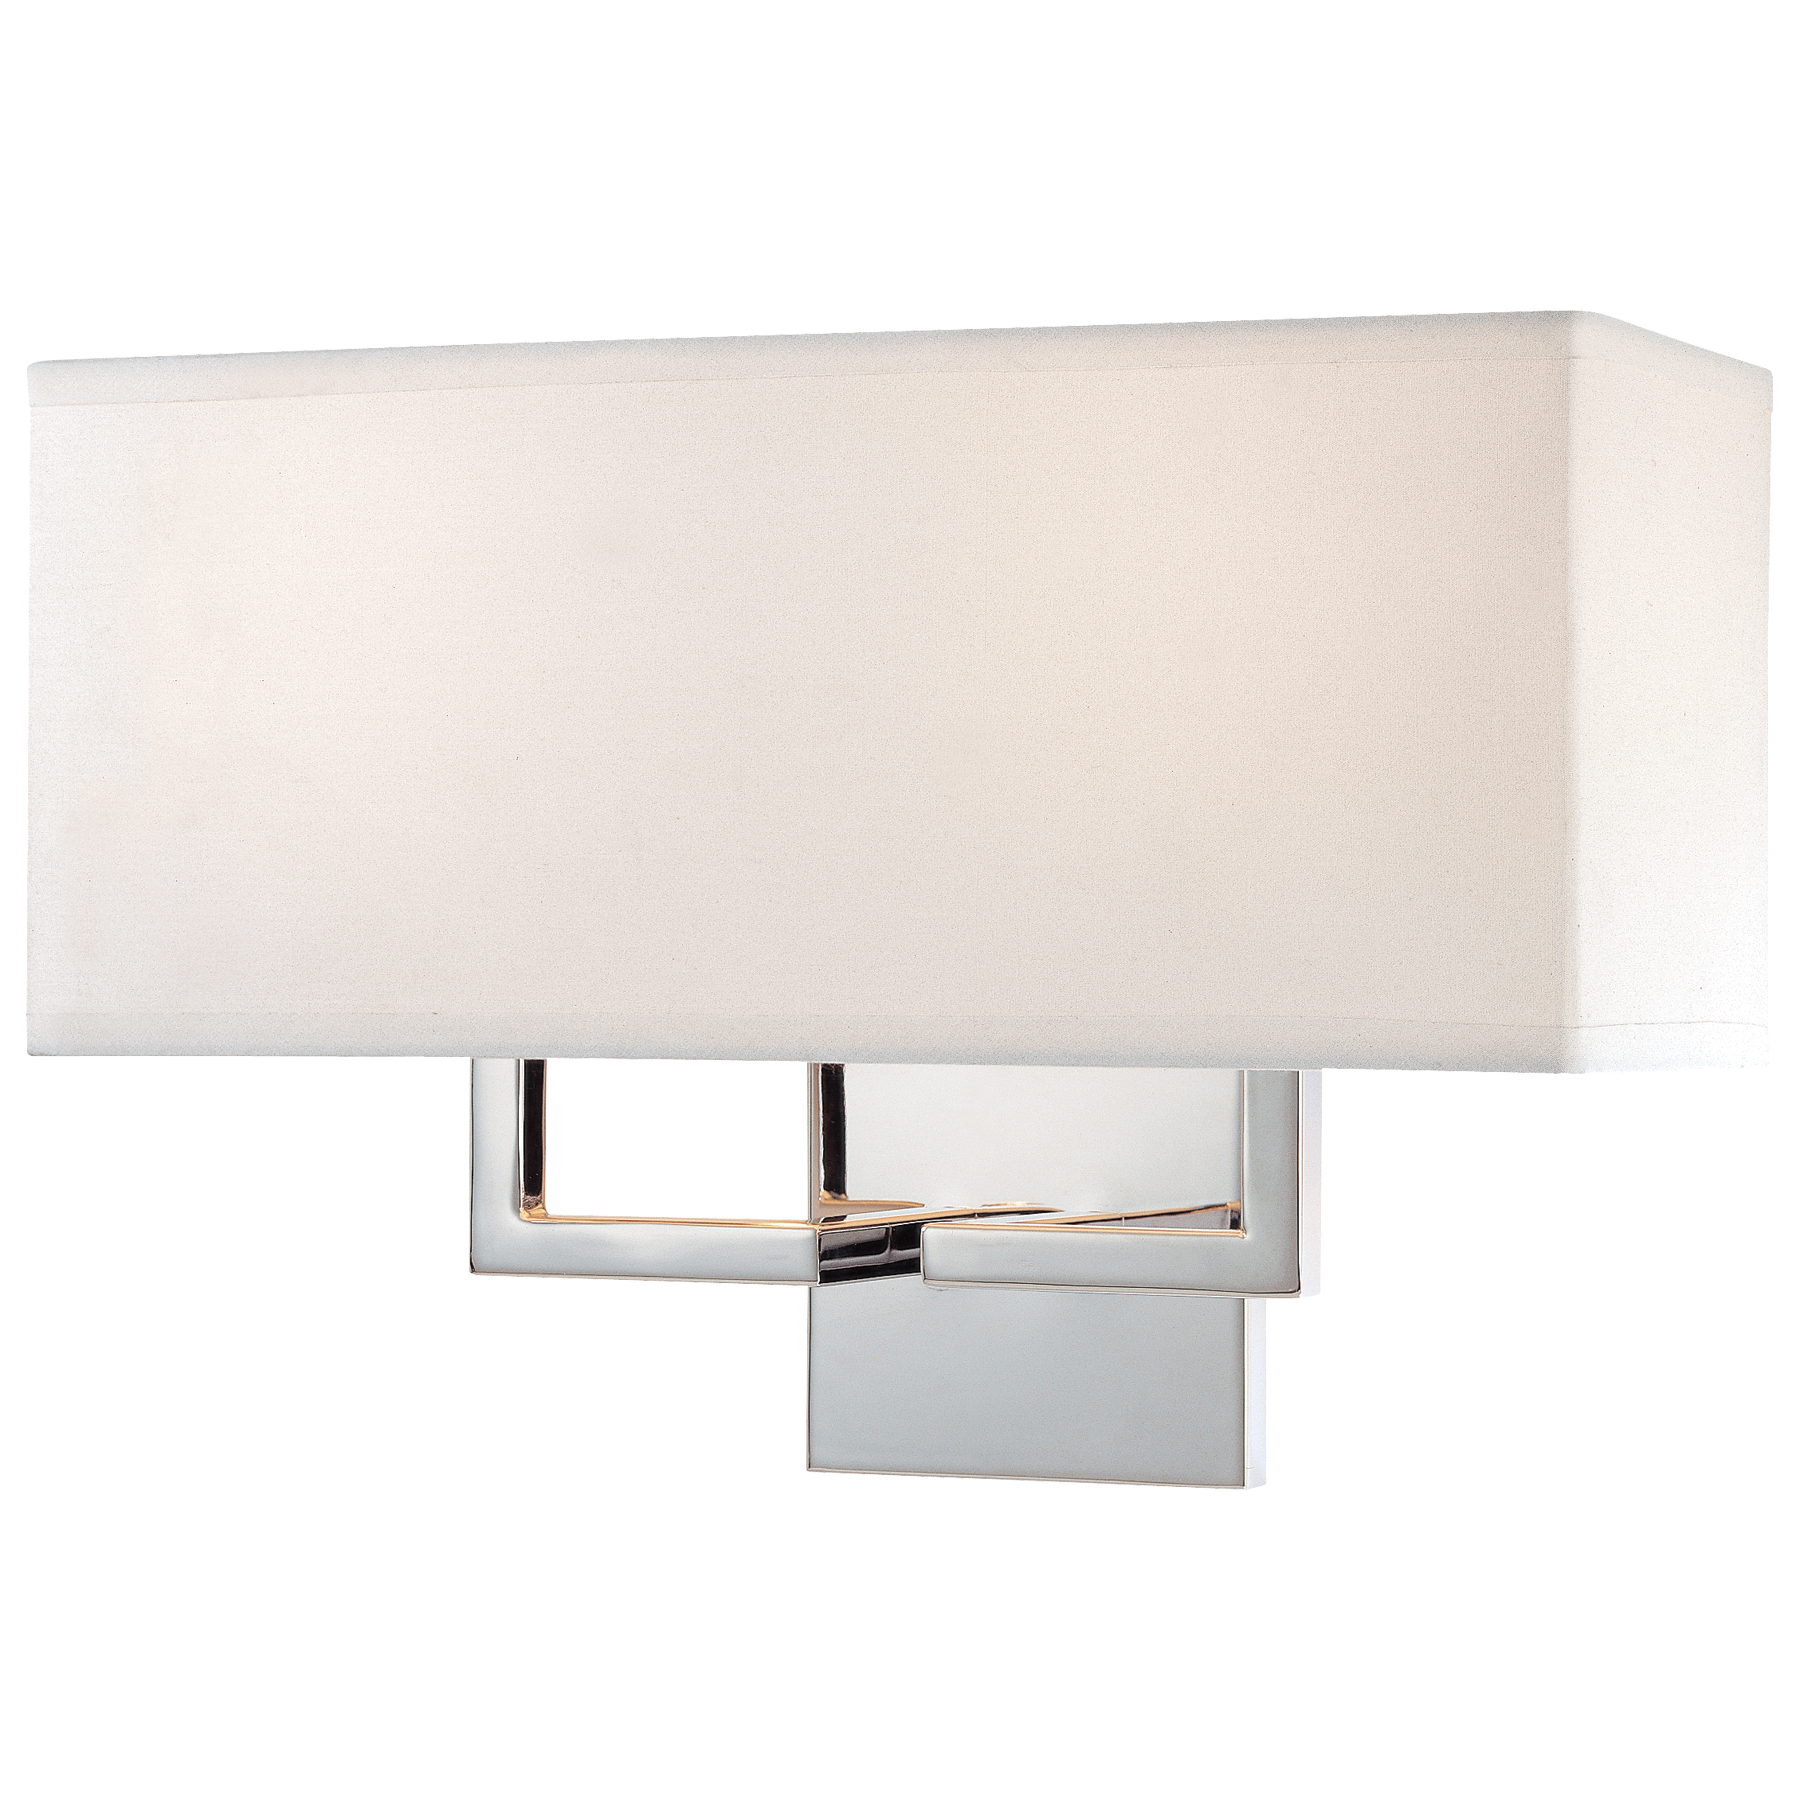 Beau P472 Wall Sconce By George Kovacs | P472 077